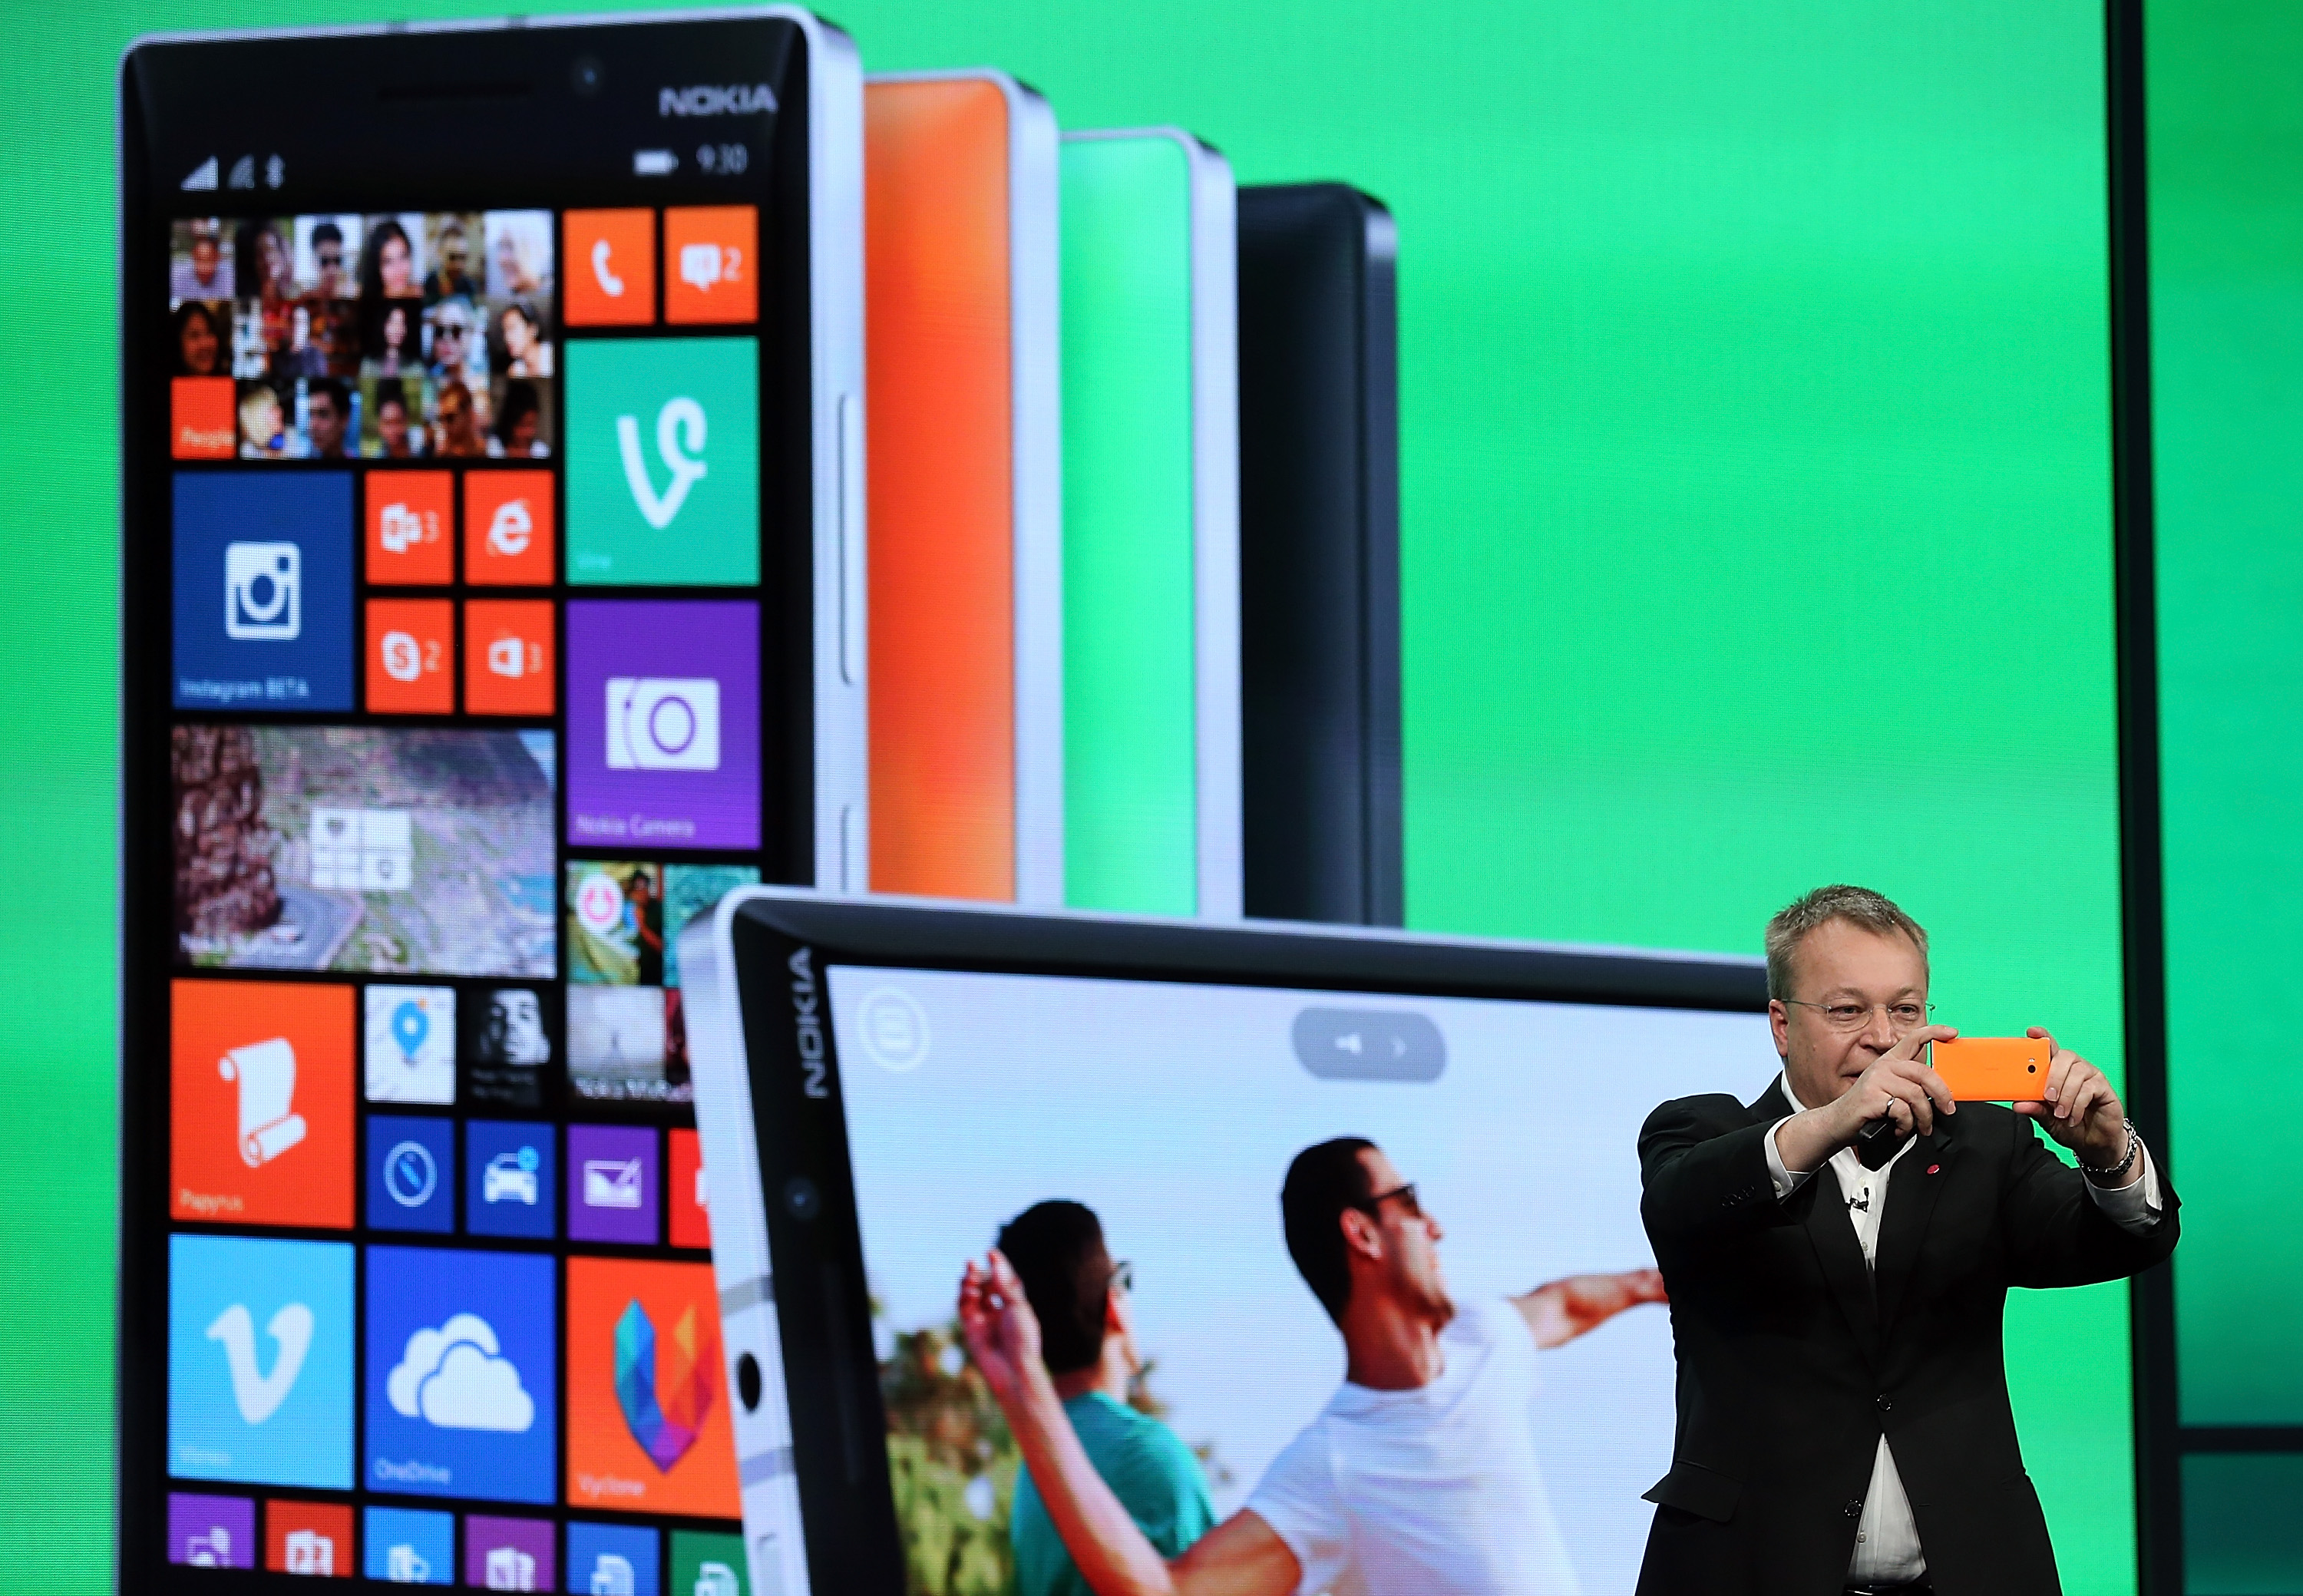 Stephen Elop, executive vice president of devices and services at Nokia, introduces the new Nokia 930 during the 2014 Microsoft Build developer conference on April 2, 2014 in San Francisco, California. (Photo by Justin Sullivan/Getty Images)